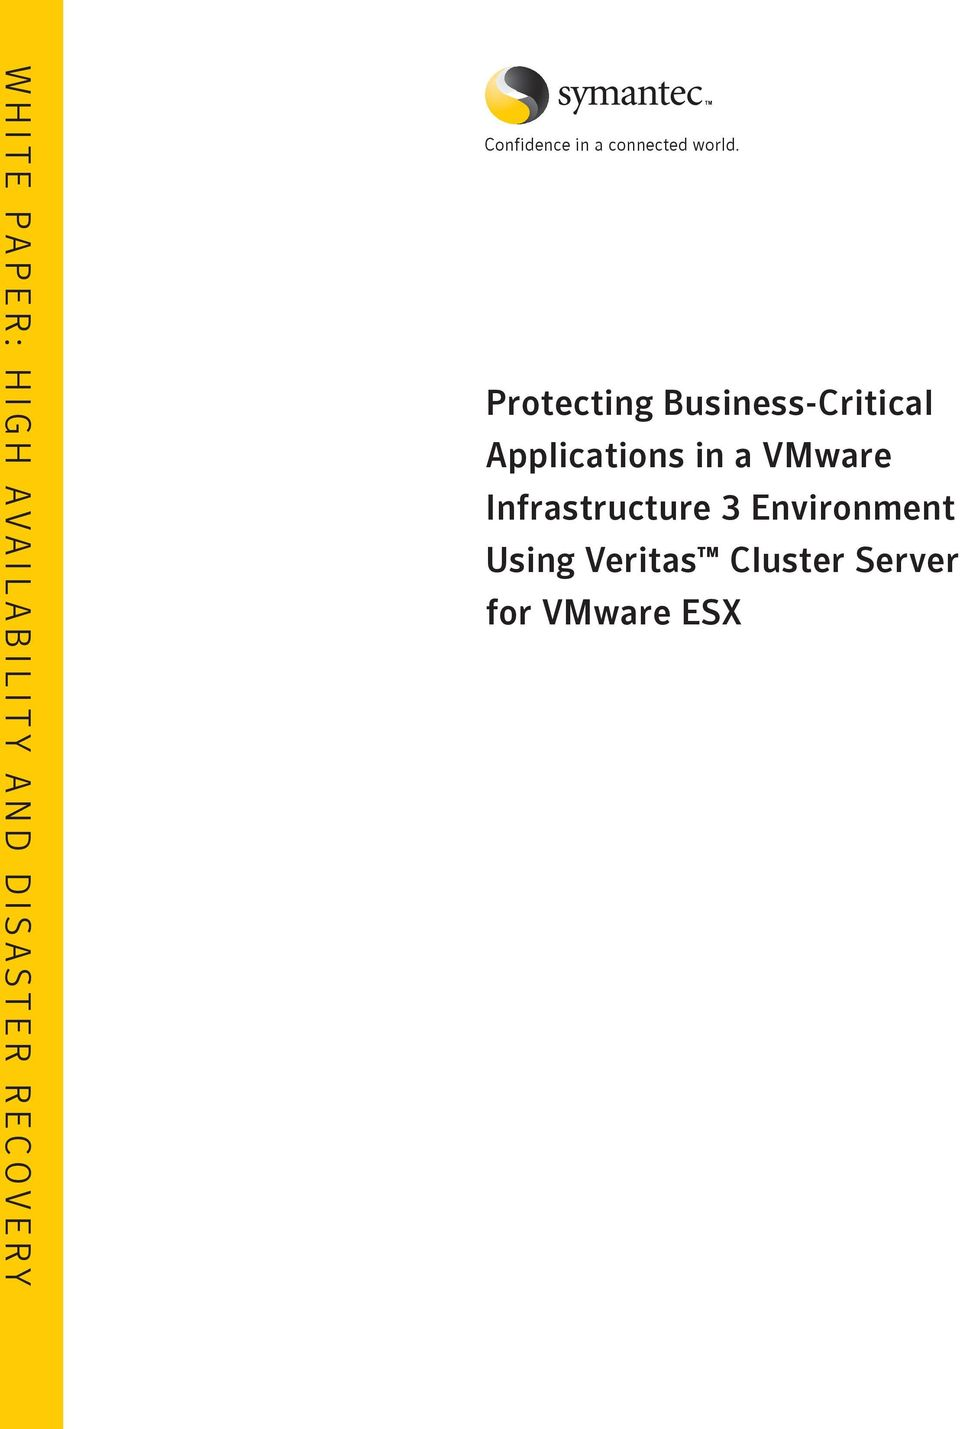 Protecting Business-Critical Applications in a VMware